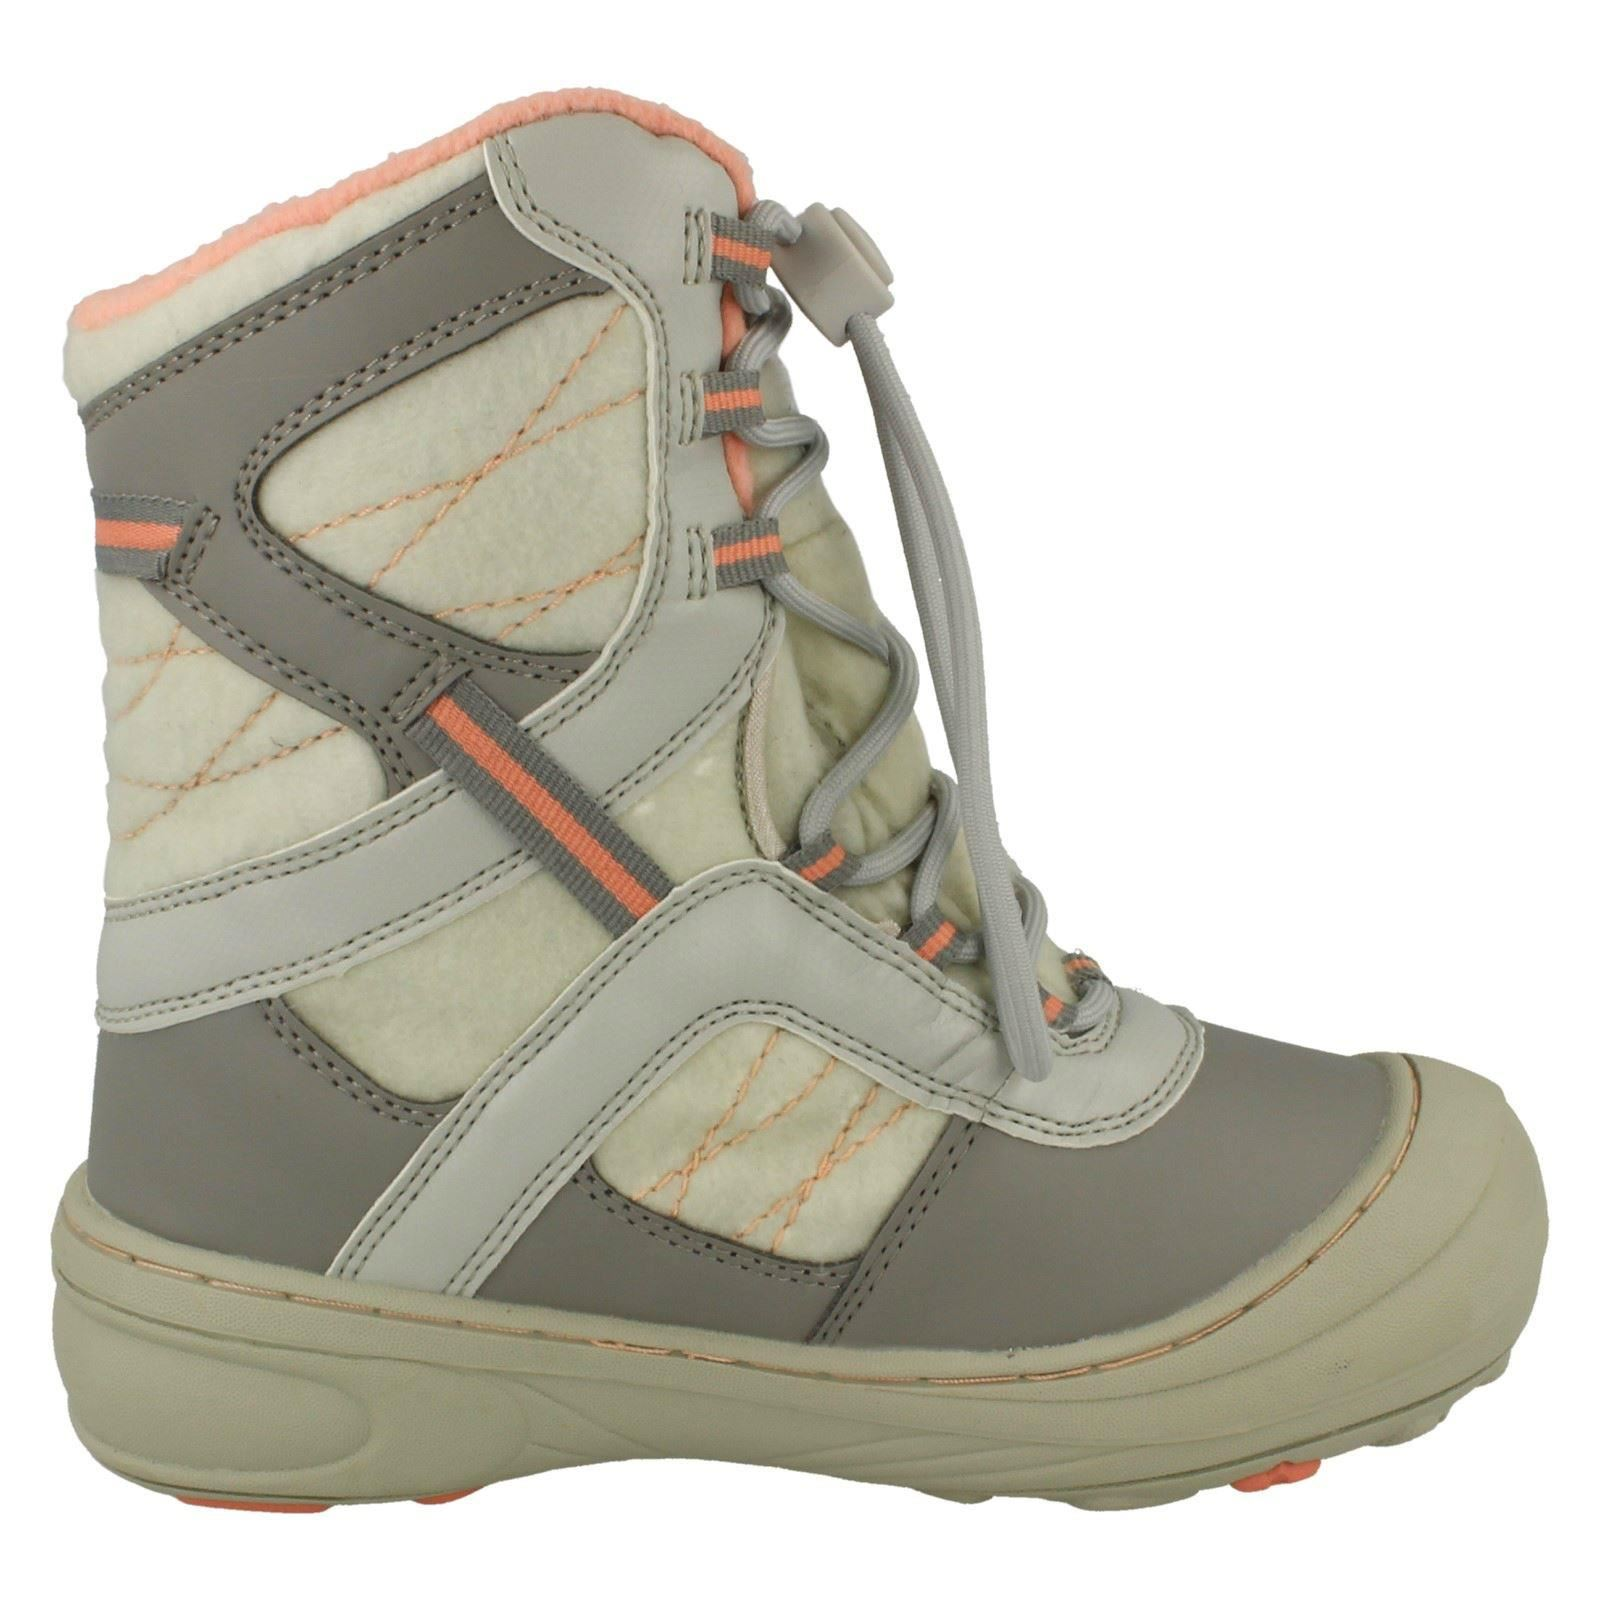 Girls Hi-Tec Casual Speed Lace Snow Boots Slalom 200